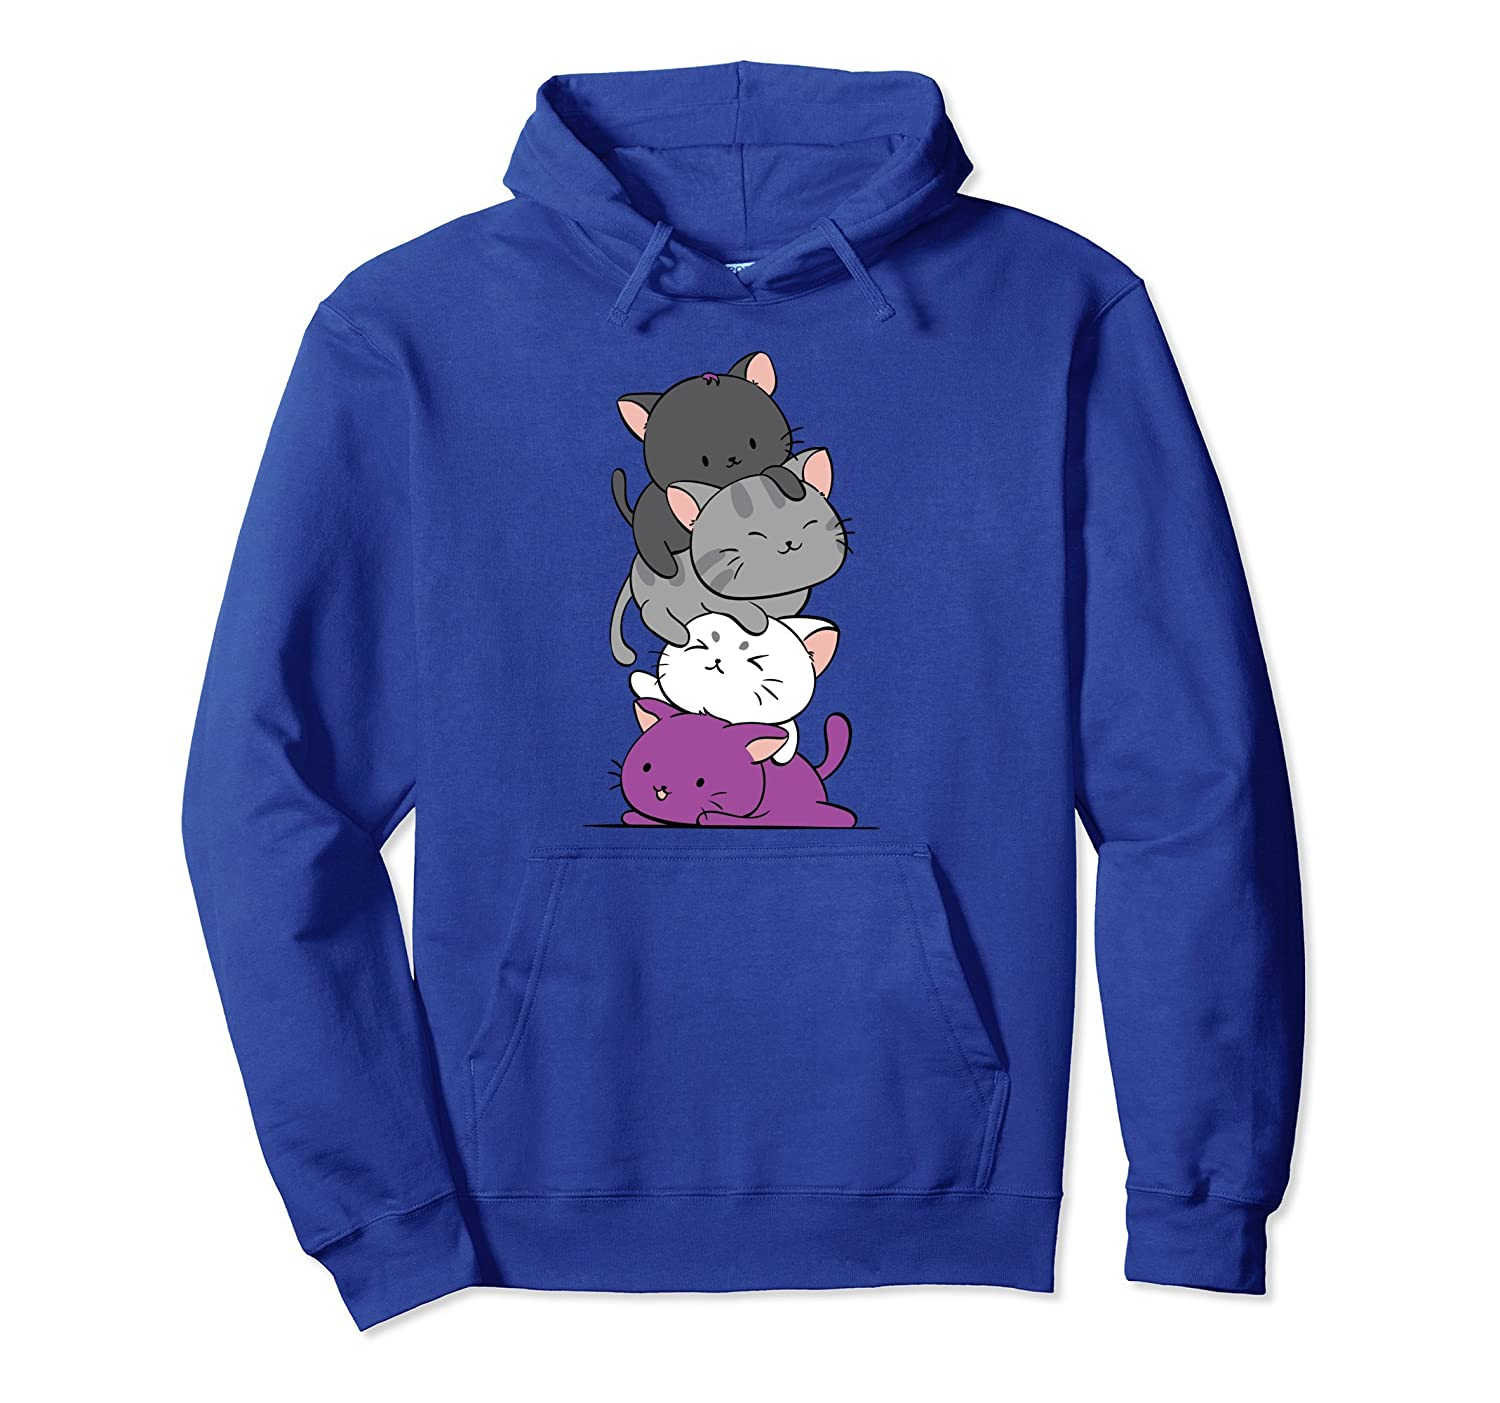 Amazon.com  Kawaii Cat Pile Anime Hoodie - Asexual Pride Flag Kittens   Clothing 3d95387dc29b